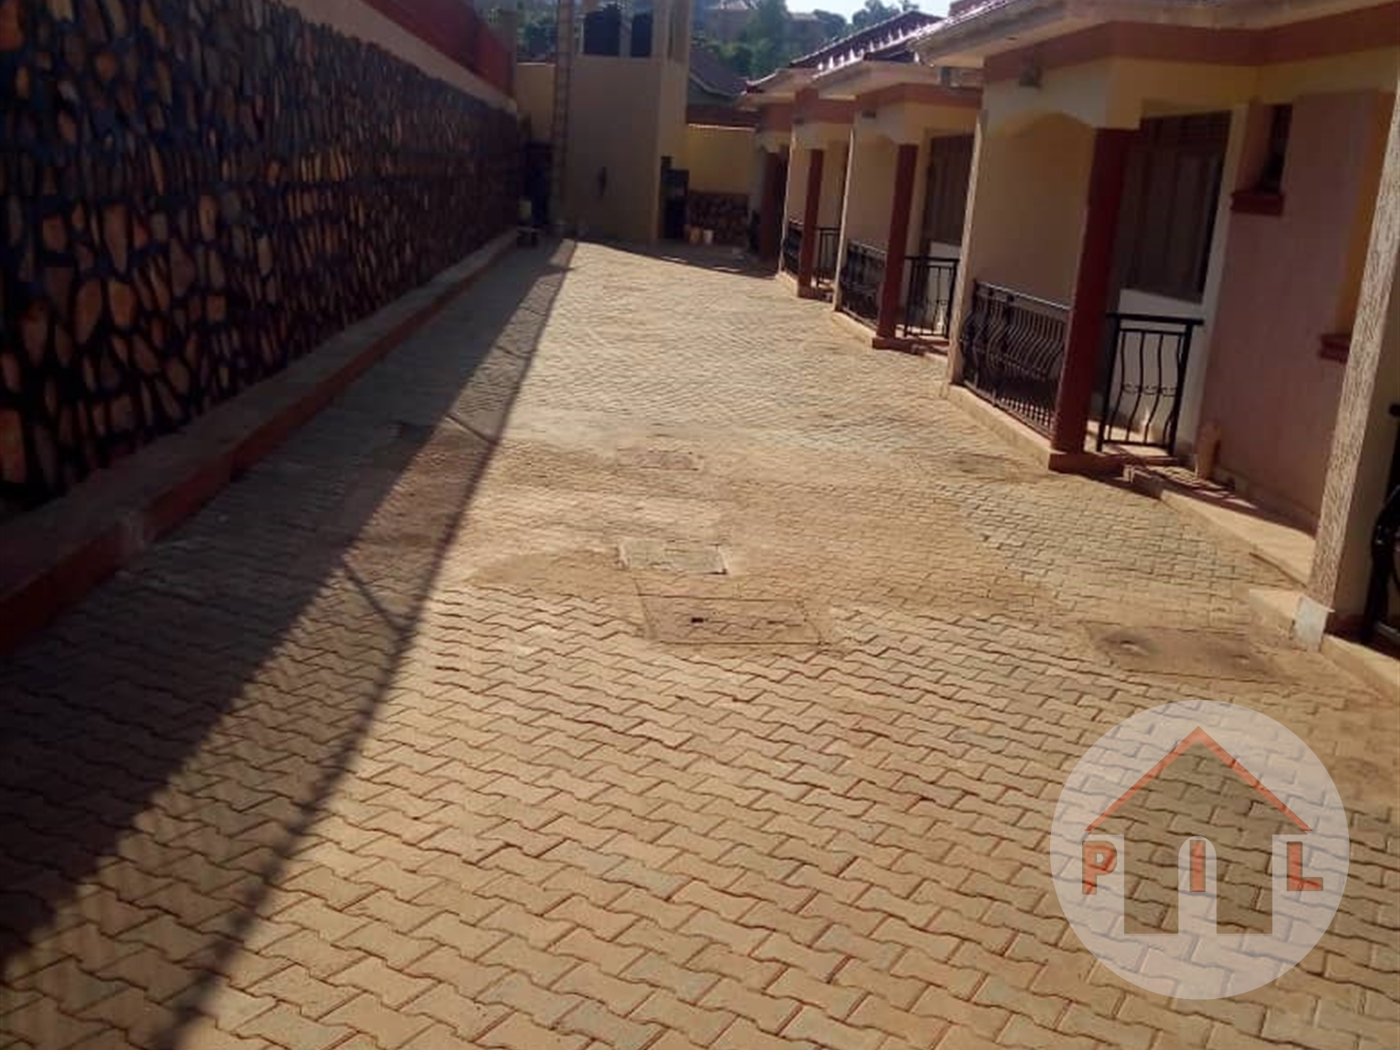 Rental units (for sale) for rent in Kira Wakiso